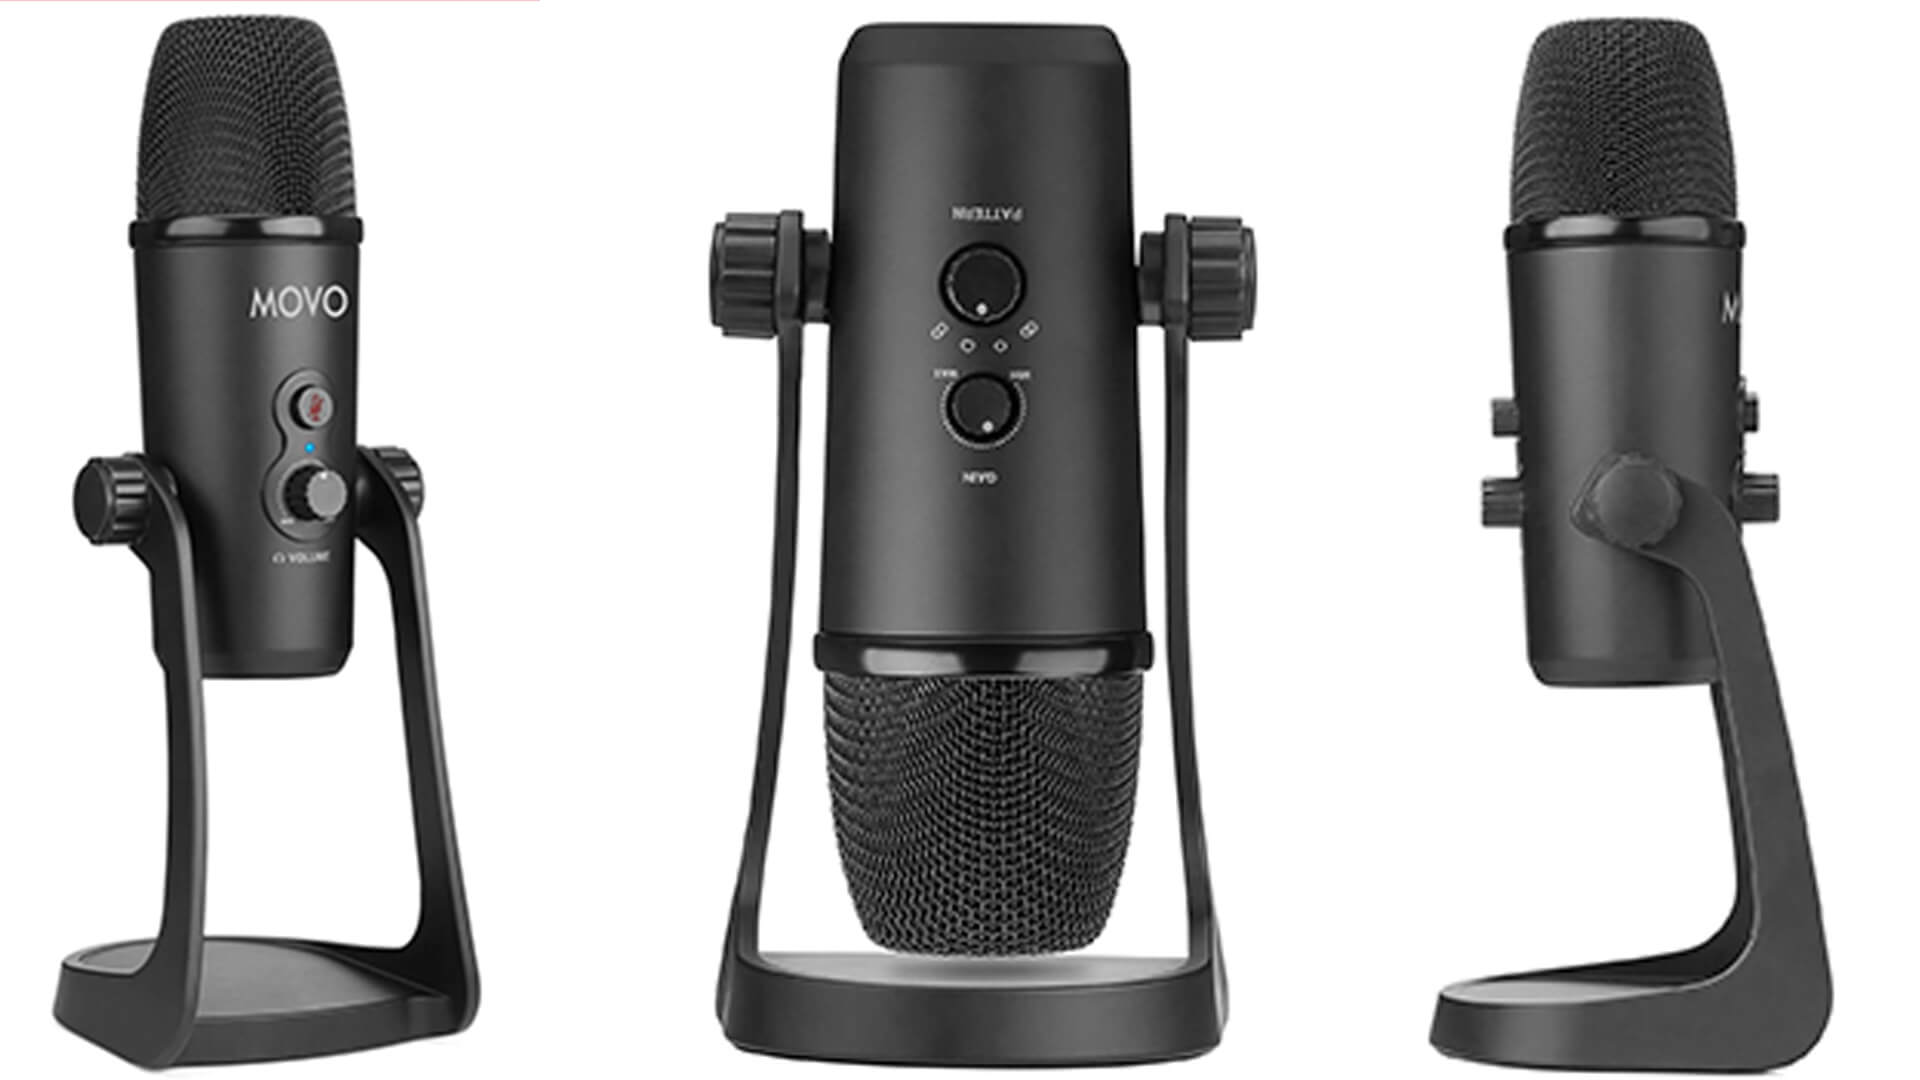 MOVO UM700 USB Microphone Review: A Solid Choice!